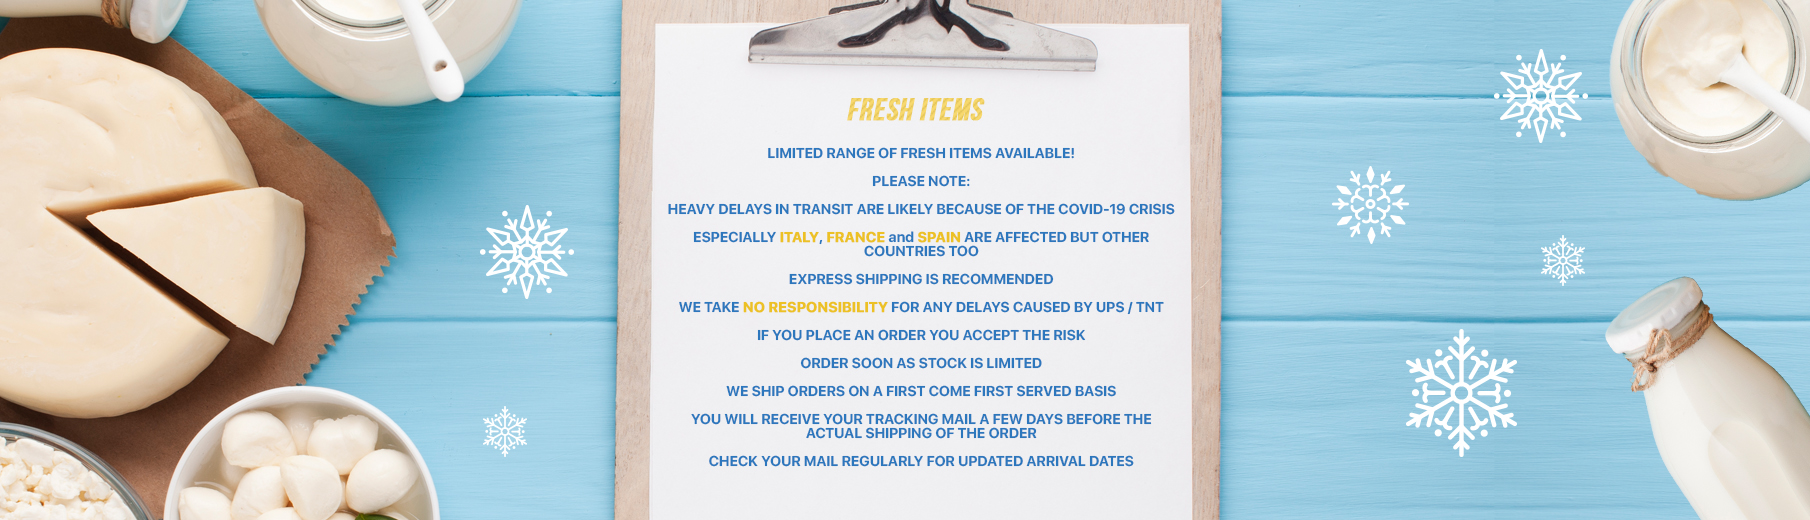 Limited Fresh Items